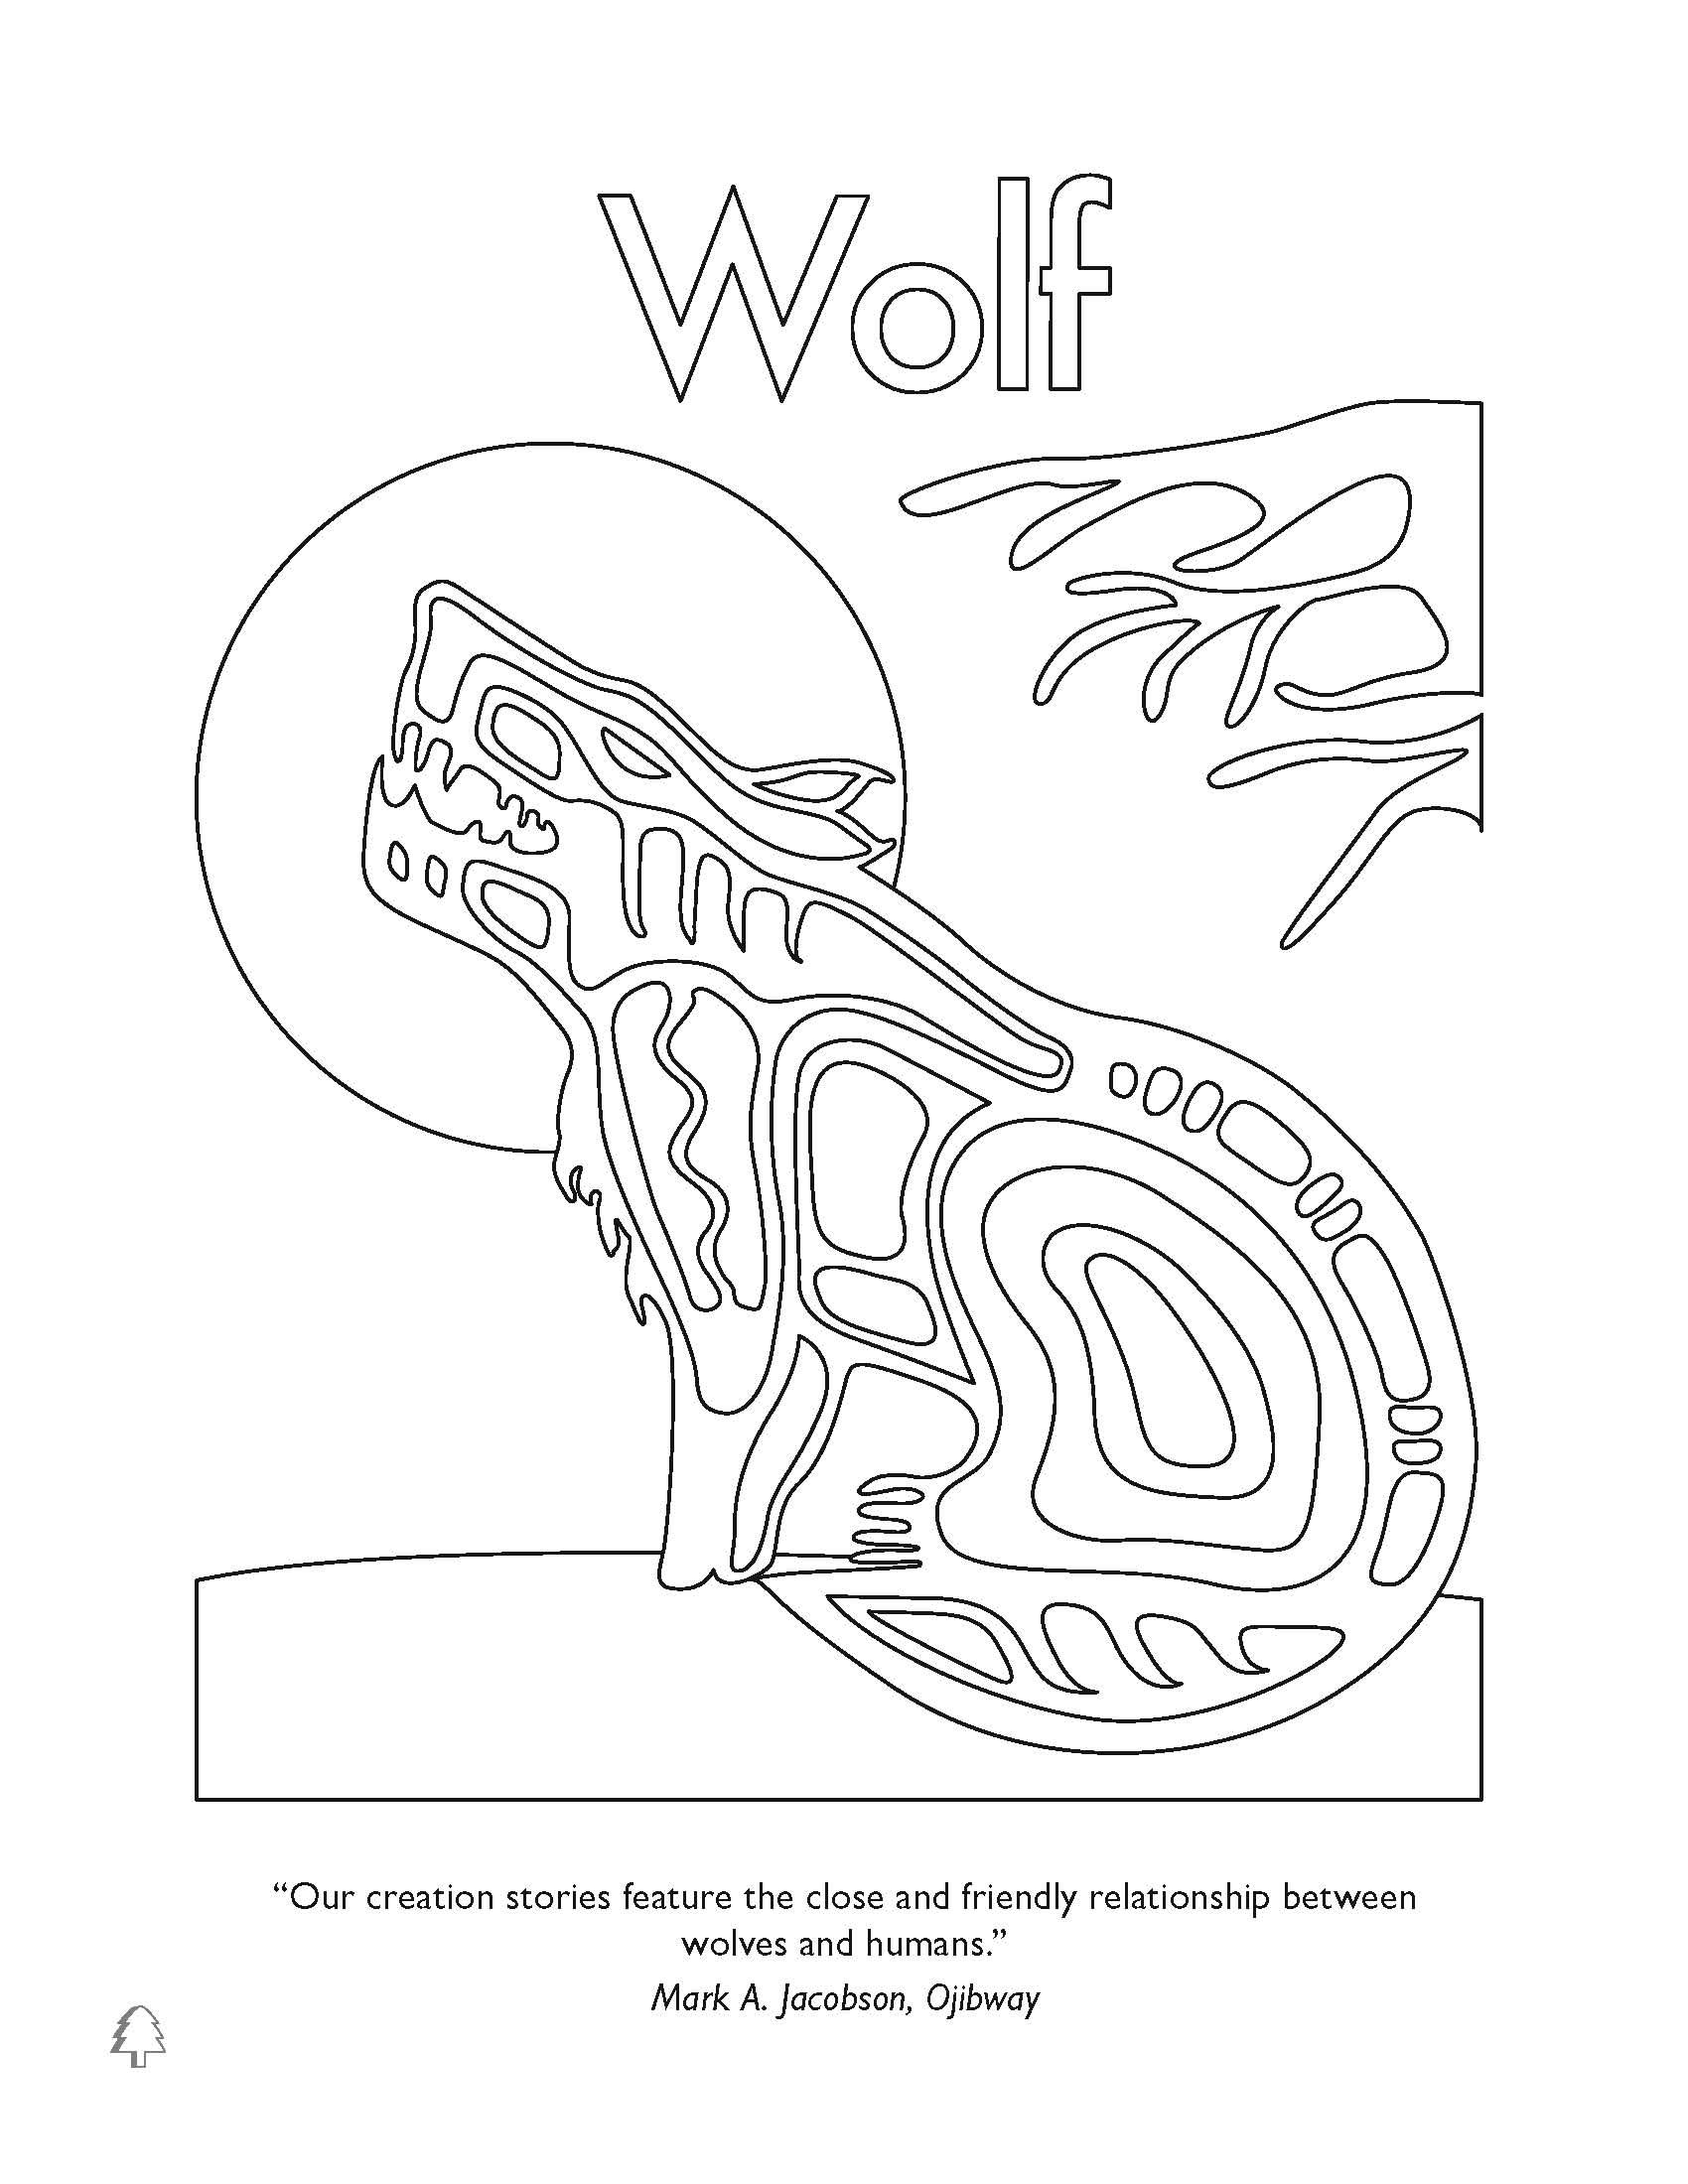 first nations animals and meanings  Google Search  first nations